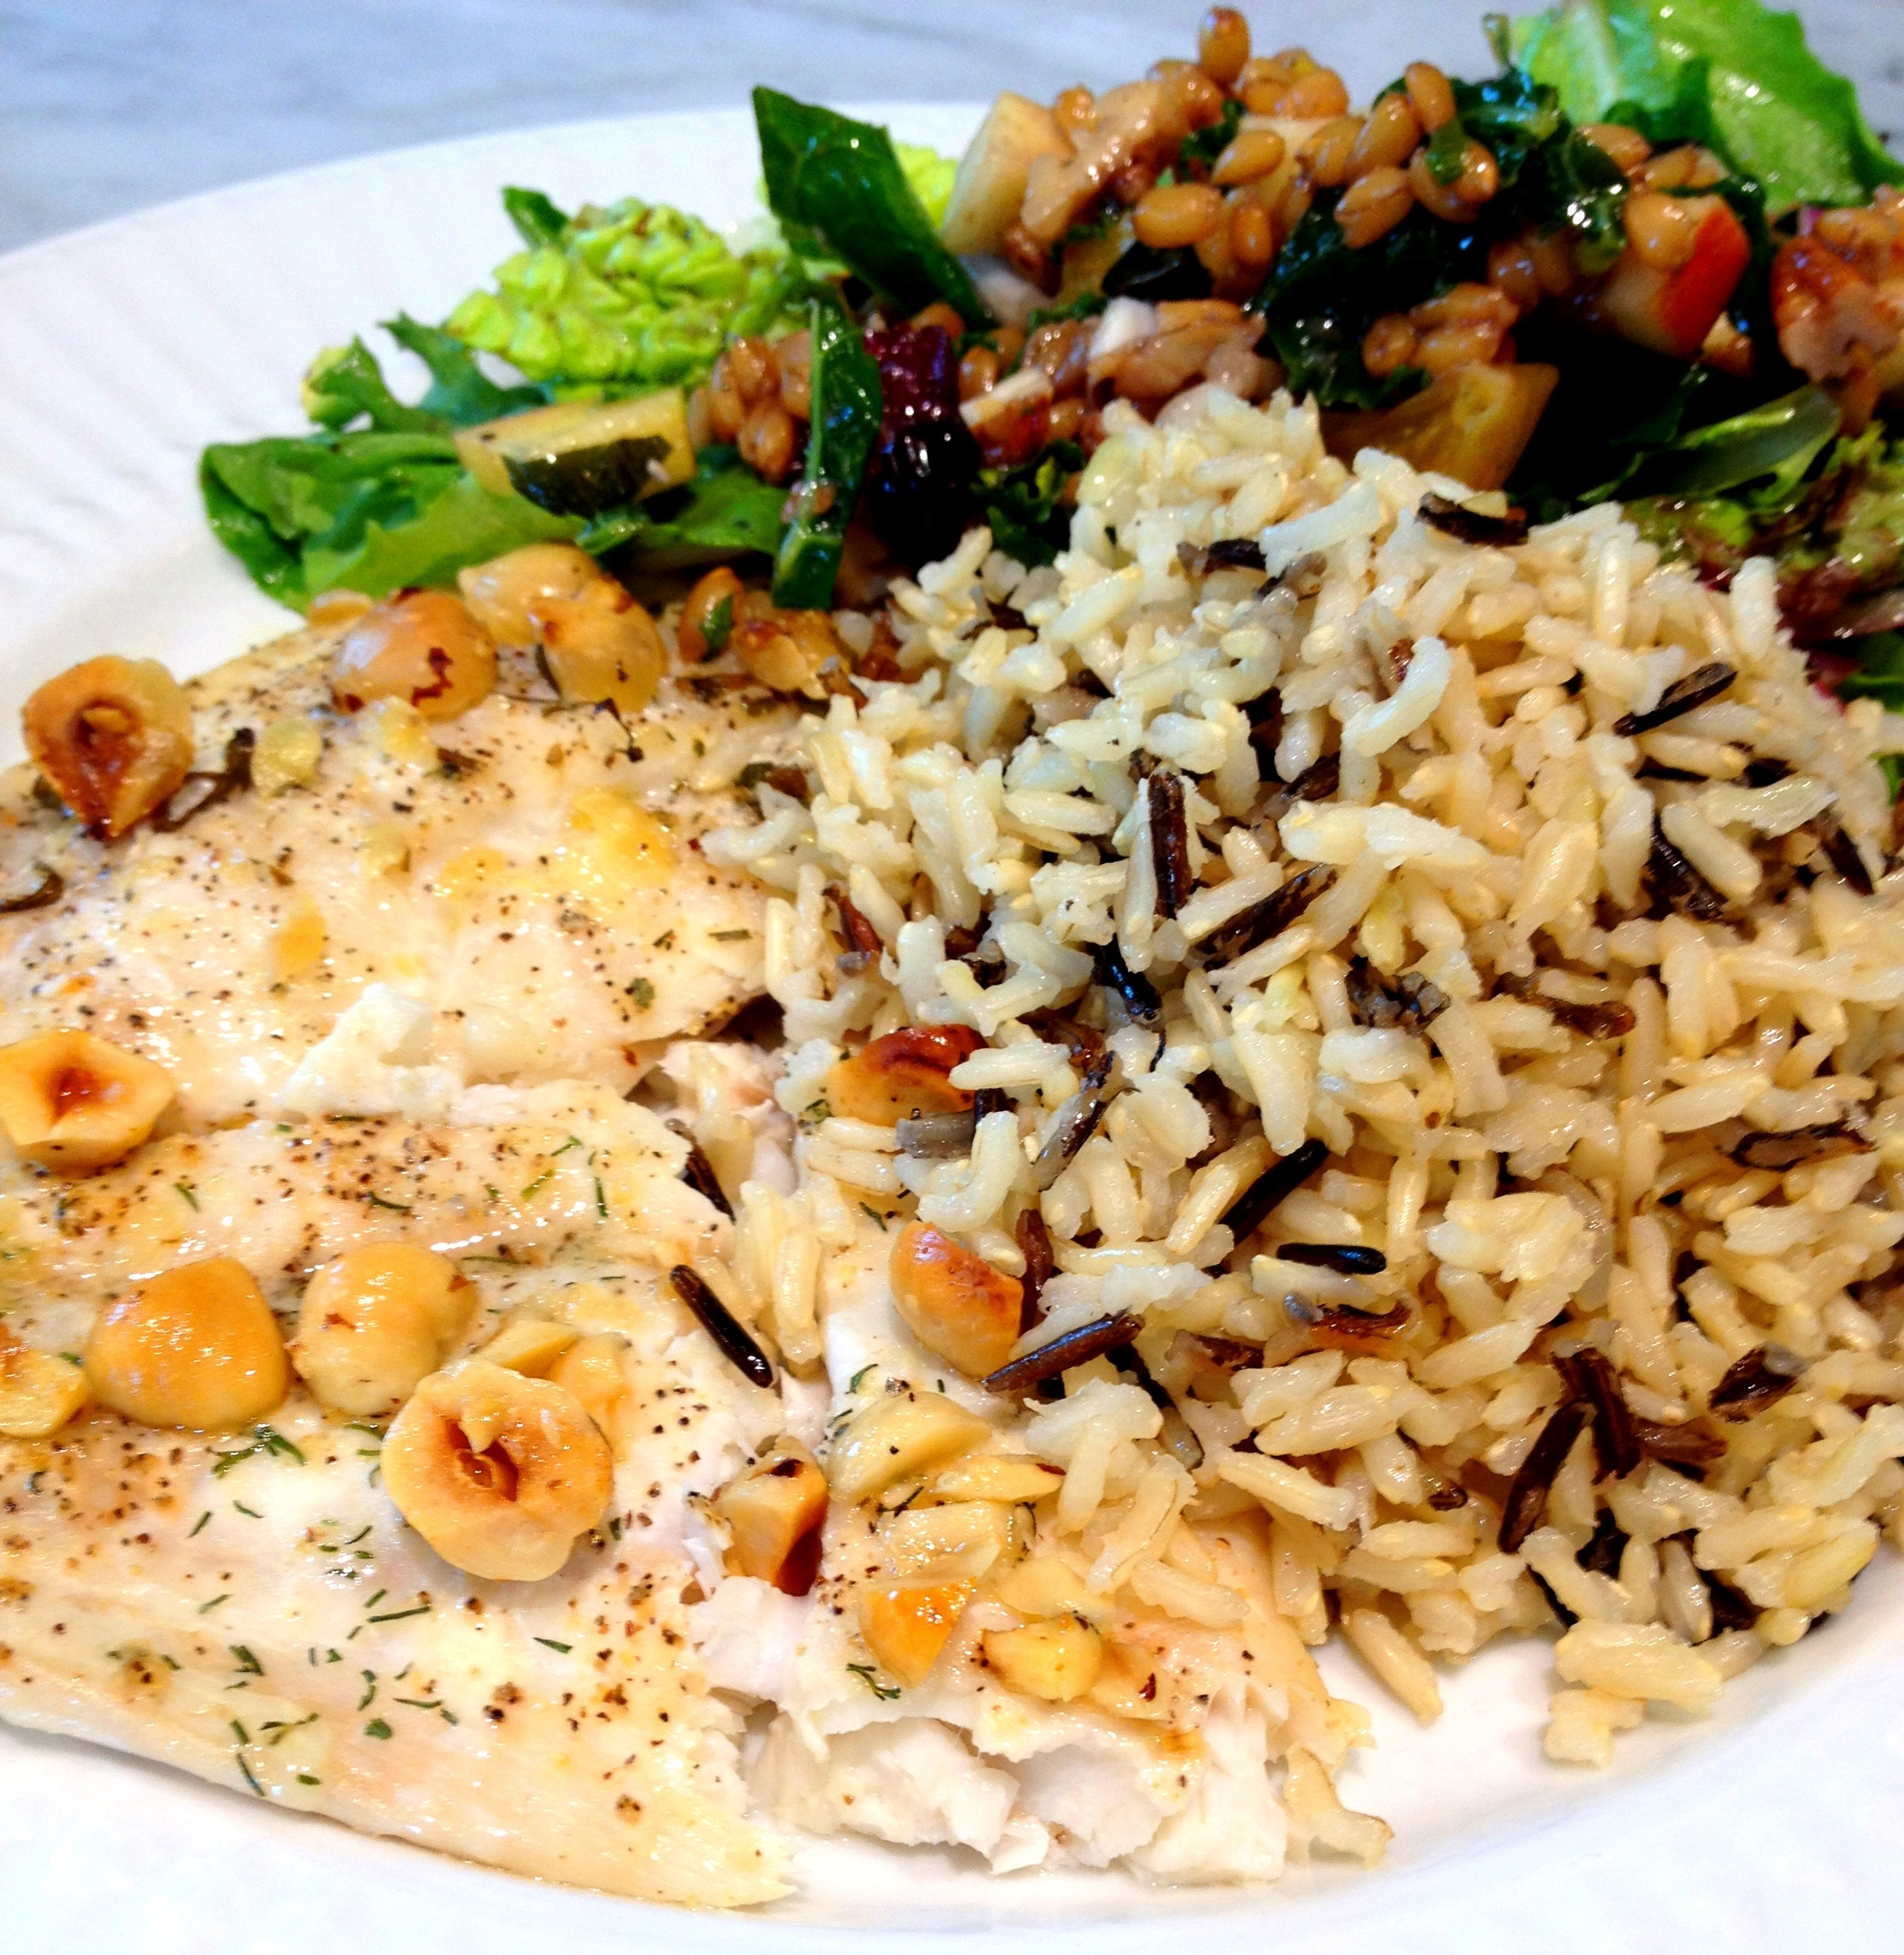 filet of sole with hazelnut butter, wild rice, and wheatberry salad